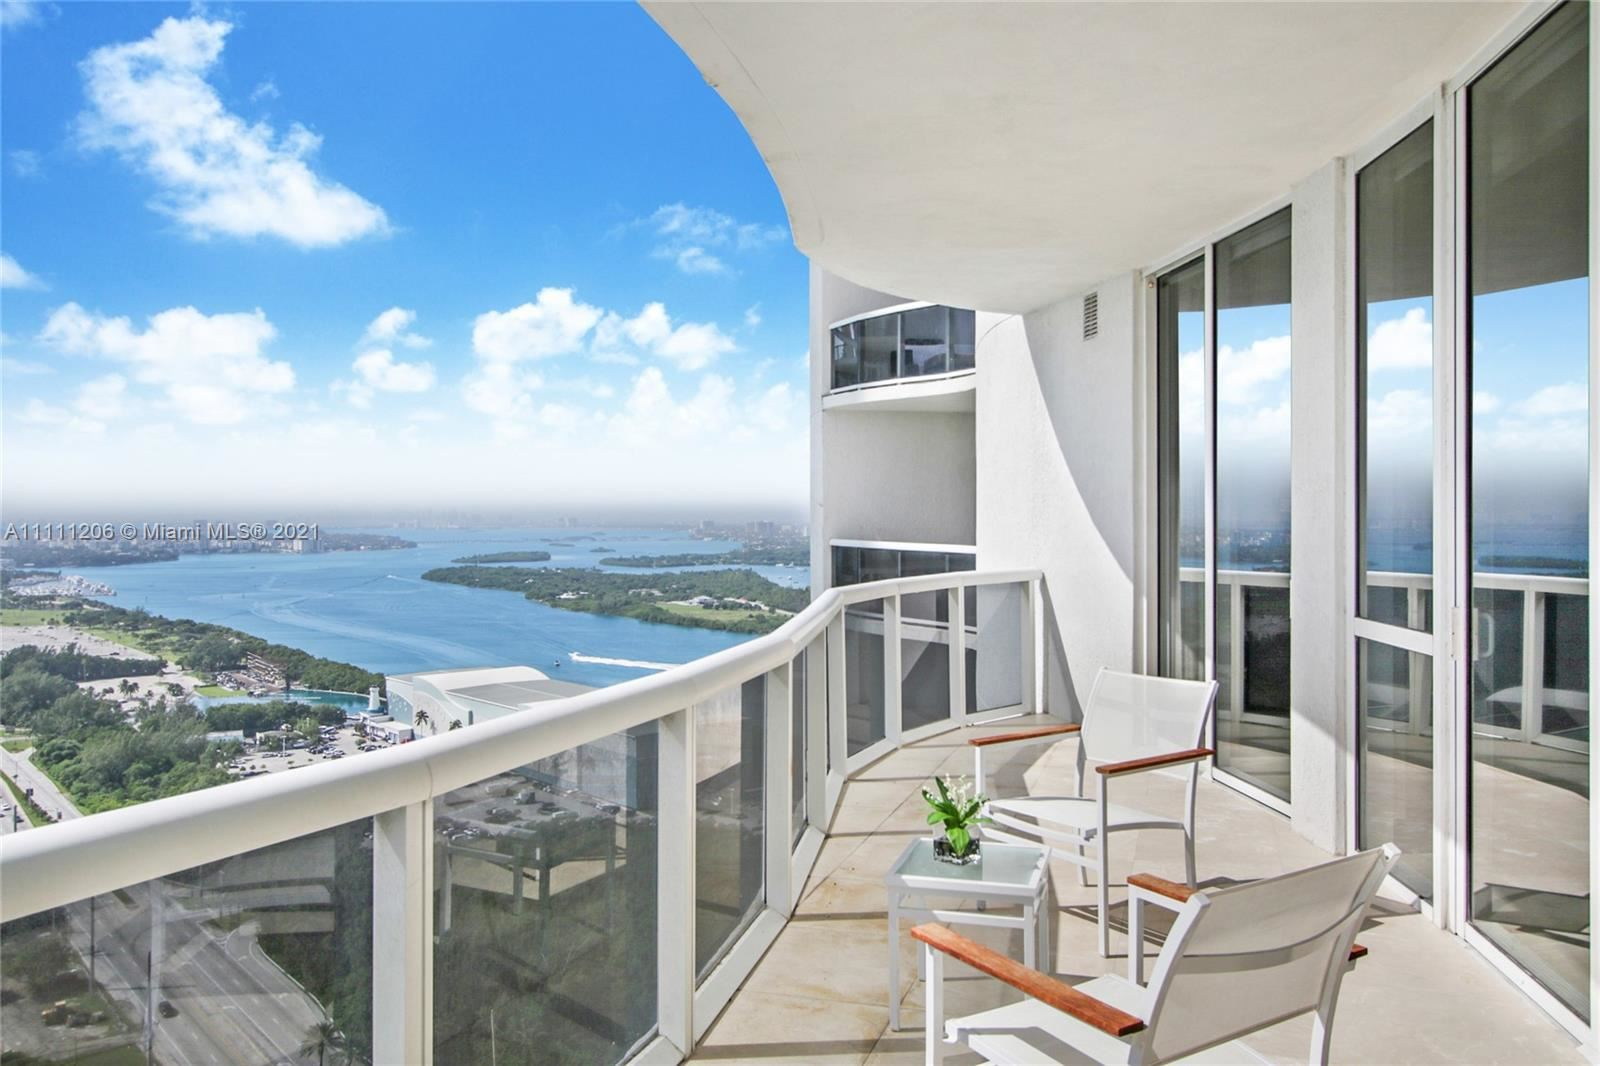 Photo of 15811 Collins Ave #3007, Sunny Isles Beach, FL 33160 (MLS # A11111206)